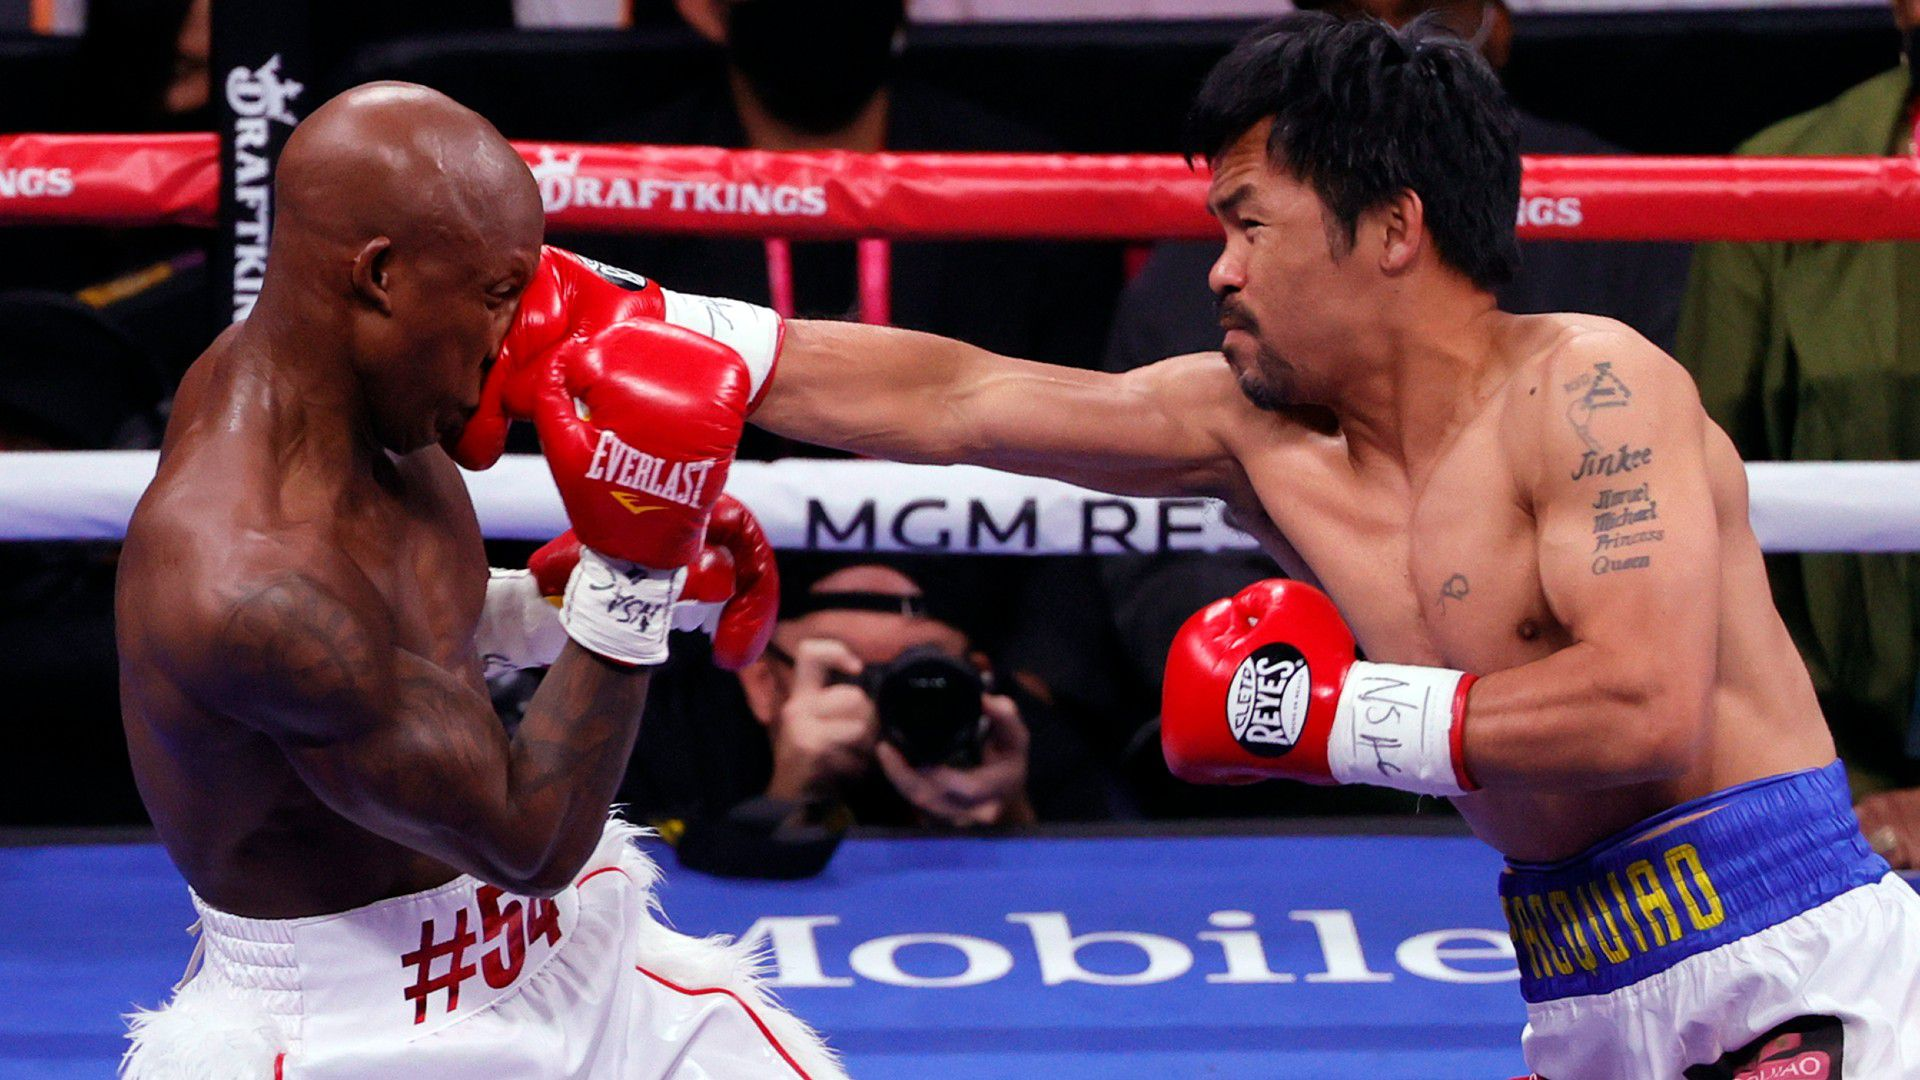 Boxing legend Pacquiao loses in comeback bout